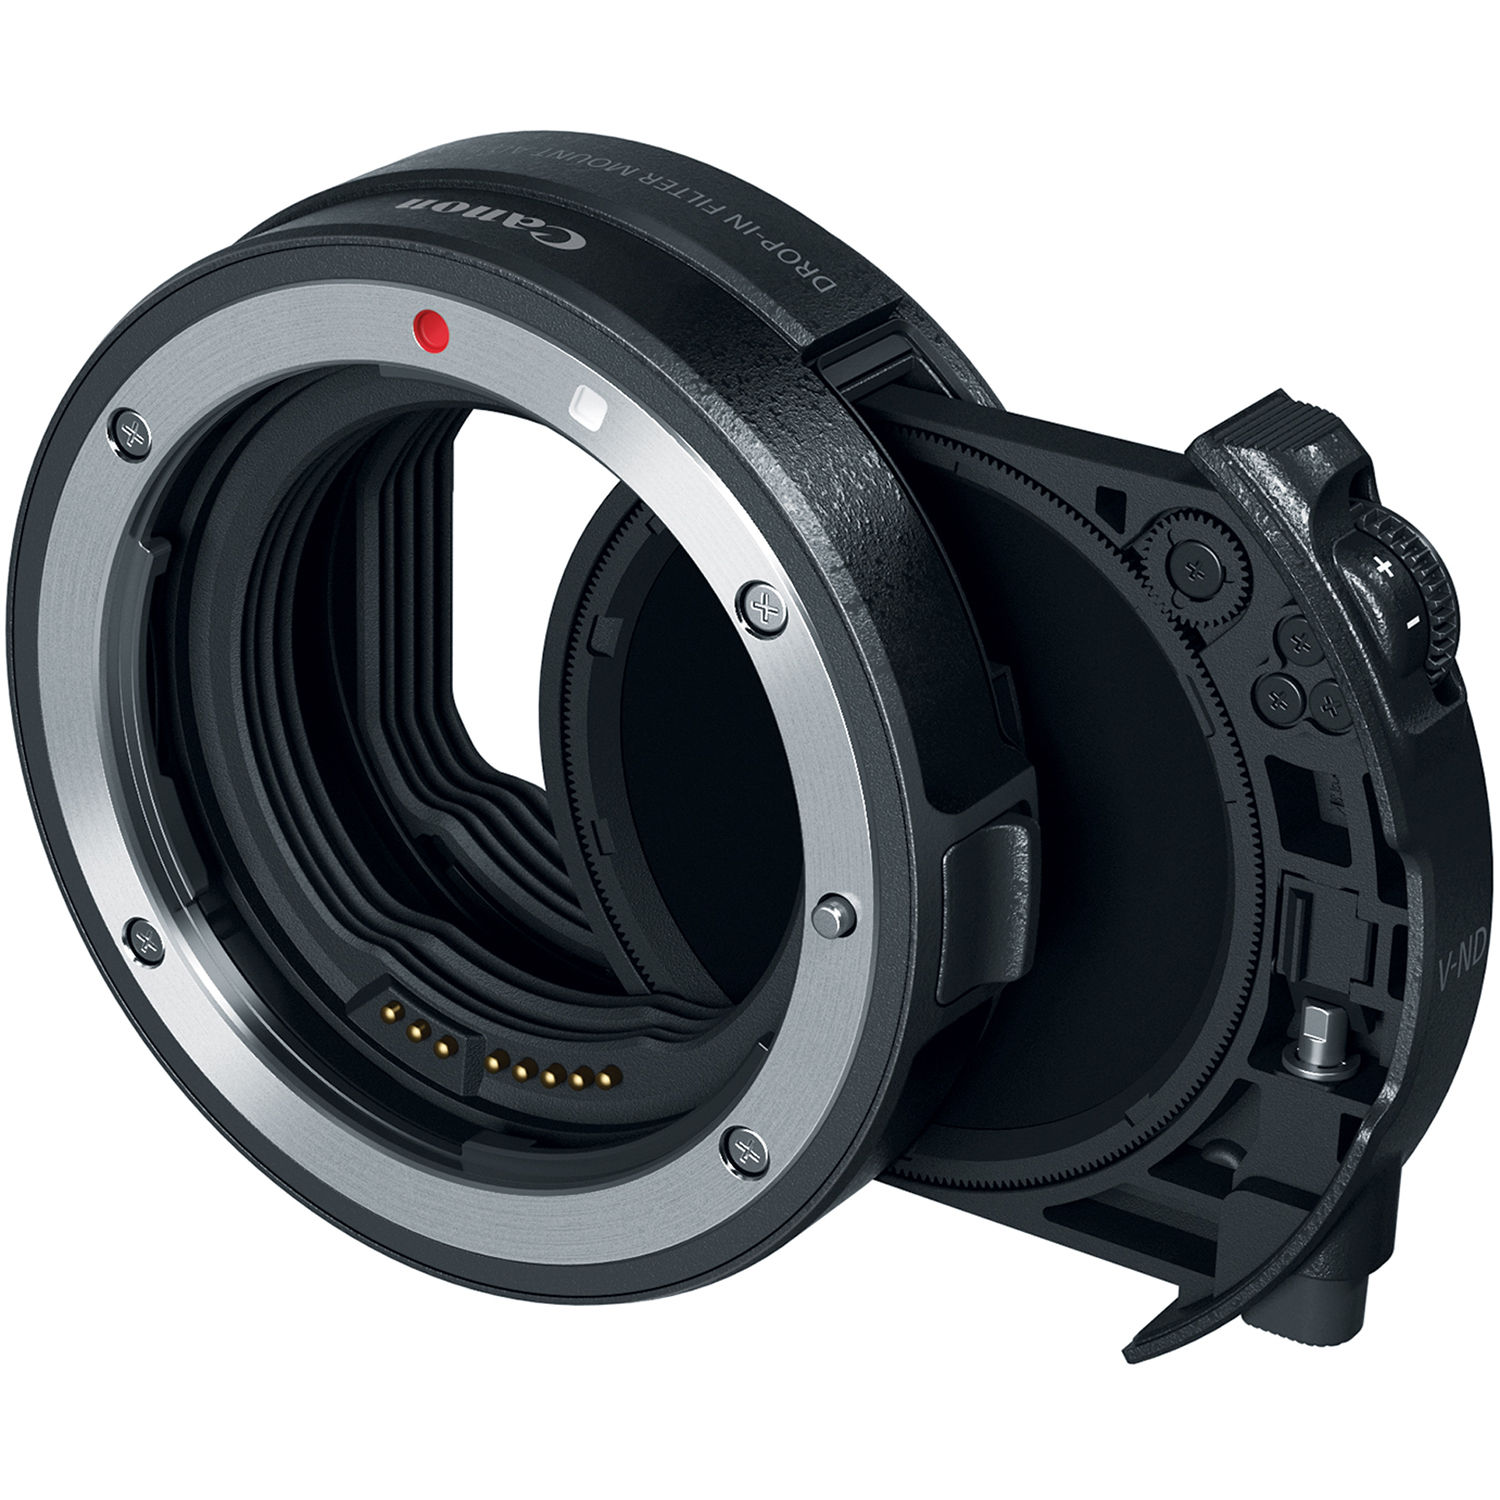 VILTROX EF-EOS R Auto Focus Lens Mount Adapter Compatible with Canon EF//EF-S Lens to EOS R and EOS RP Camera